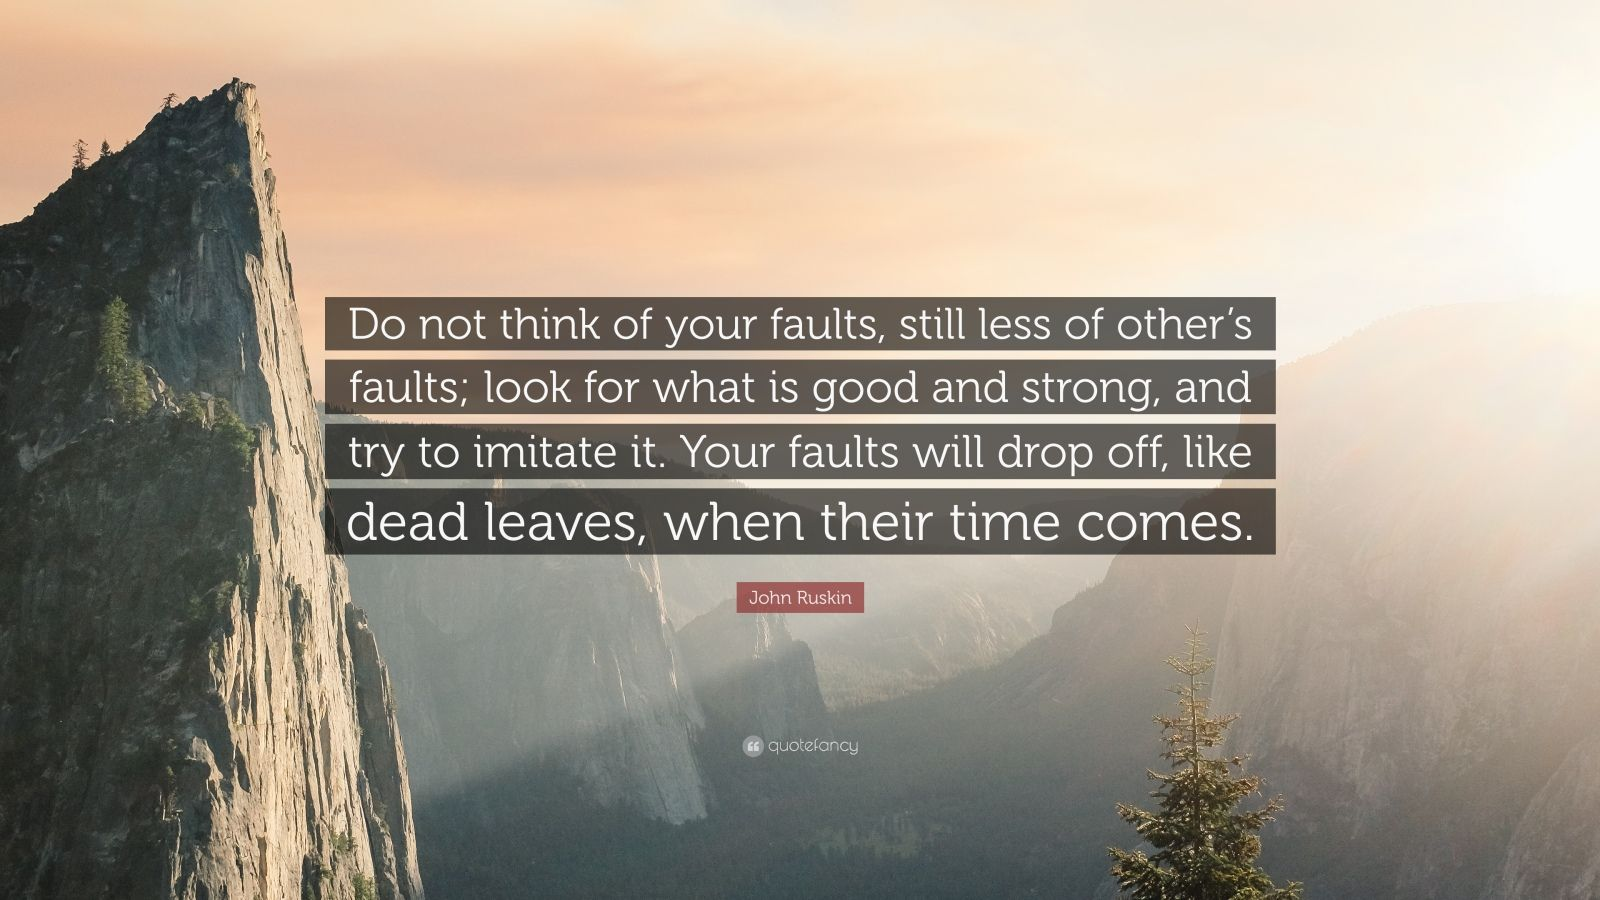 """John Ruskin Quote: """"Do not think of your faults, still less of other's faults; look for what is good and strong, and try to imitate it. Your faults will drop off, like dead leaves, when their time comes."""""""